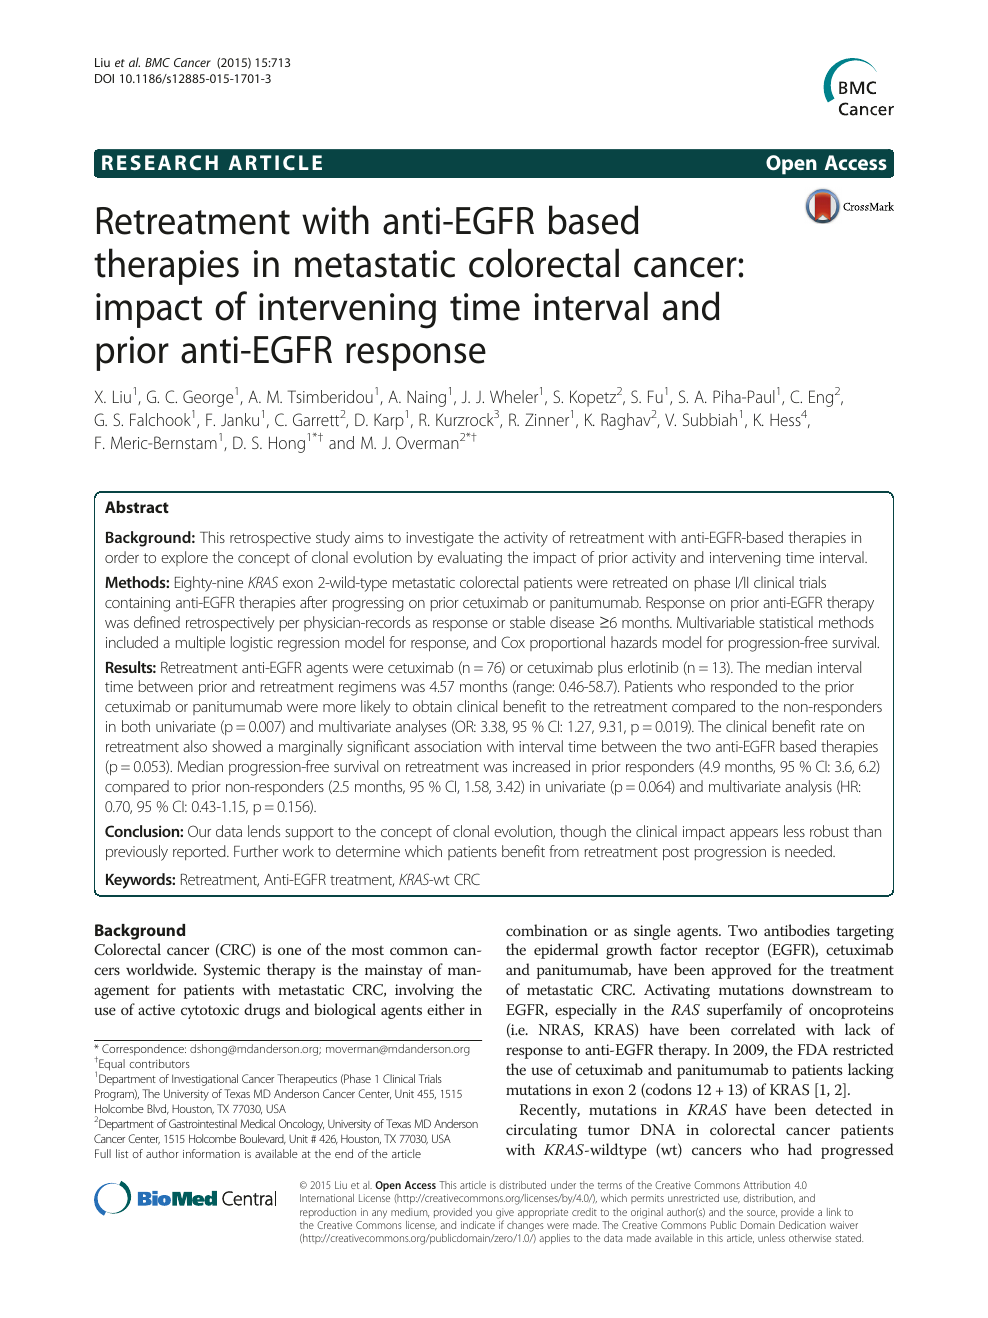 Retreatment With Anti Egfr Based Therapies In Metastatic Colorectal Cancer Impact Of Intervening Time Interval And Prior Anti Egfr Response Topic Of Research Paper In Clinical Medicine Download Scholarly Article Pdf And Read